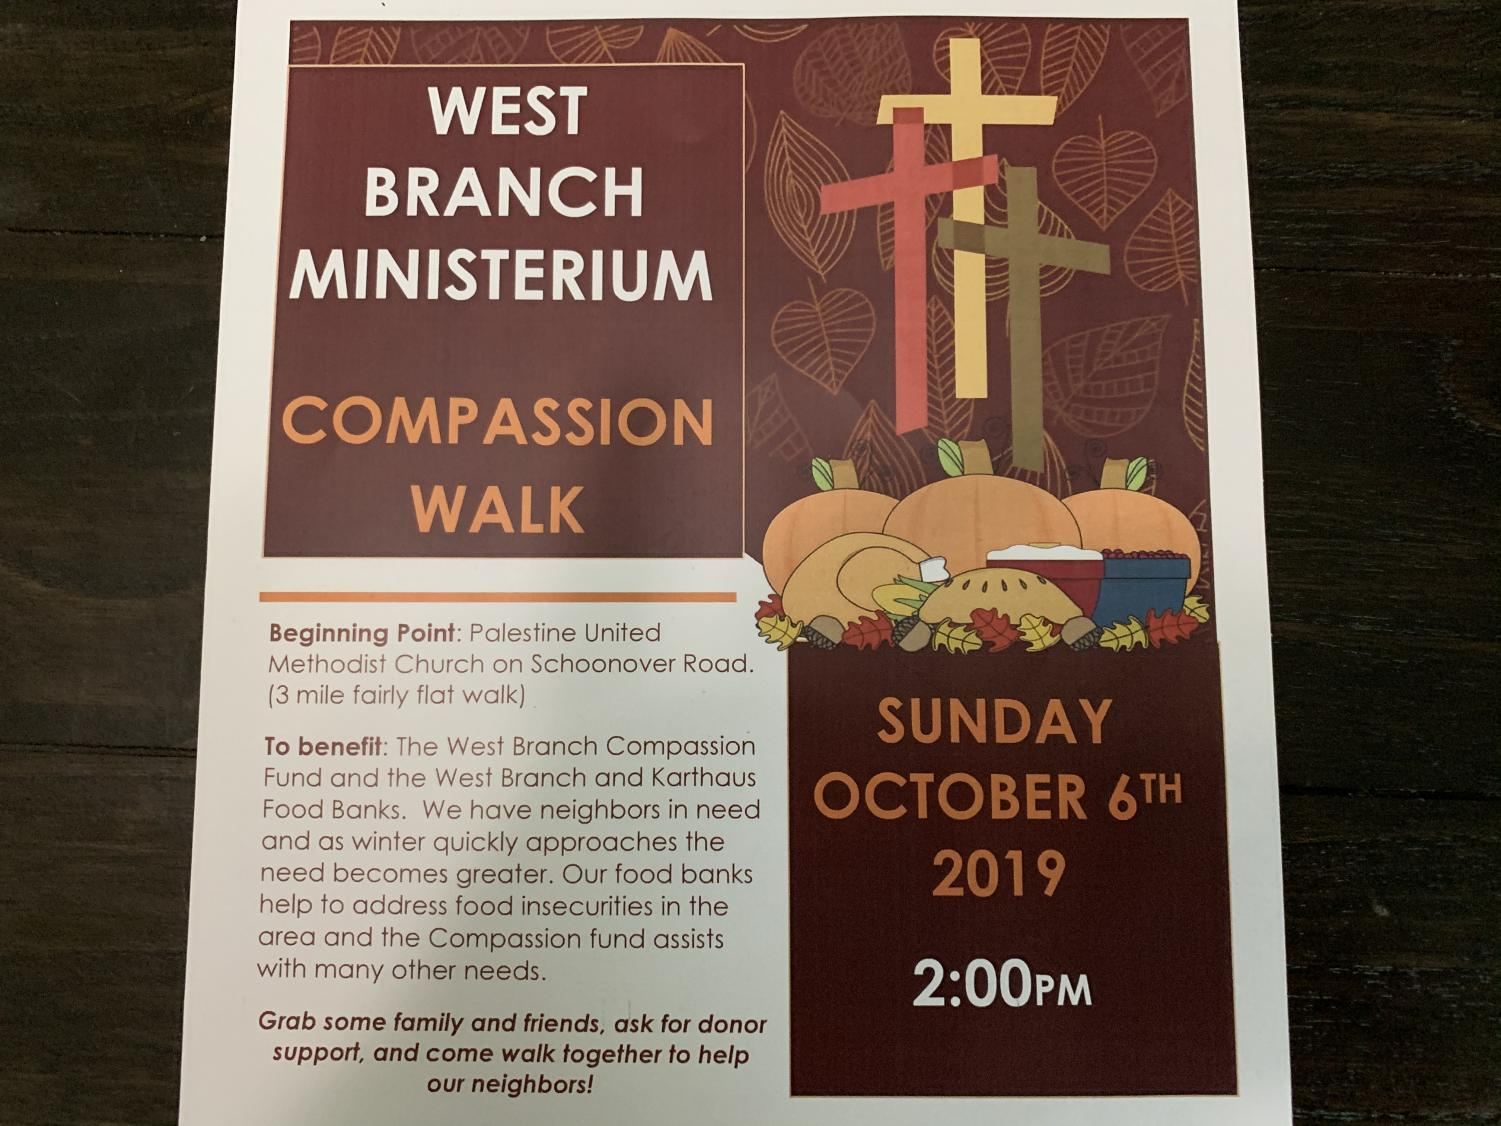 The West Branch Ministerium Compassion Walk will be on Sunday, October 6th